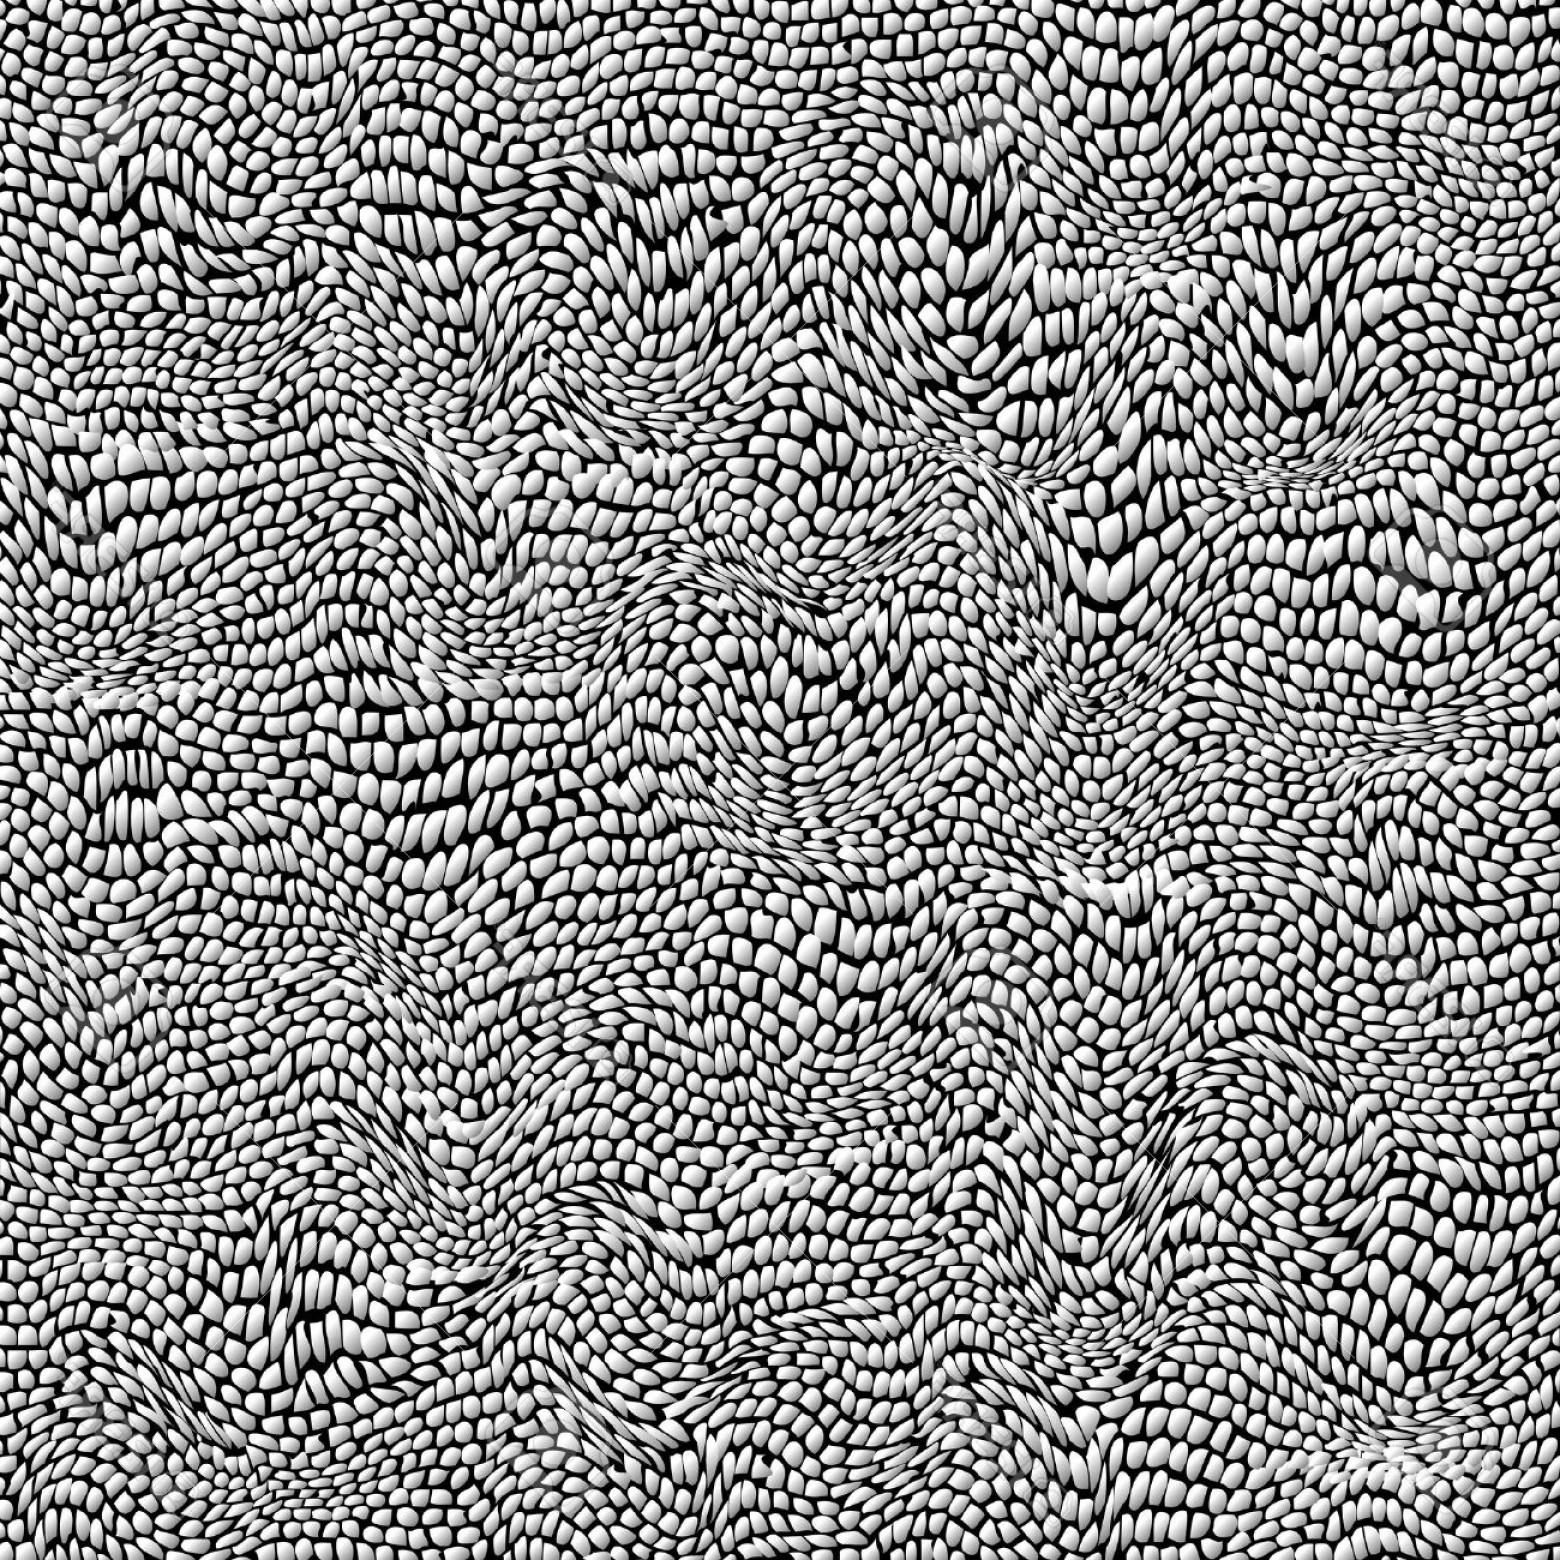 Alligator Skin Texture Vector: Photoabstract Grey Leather Texture Vector Background